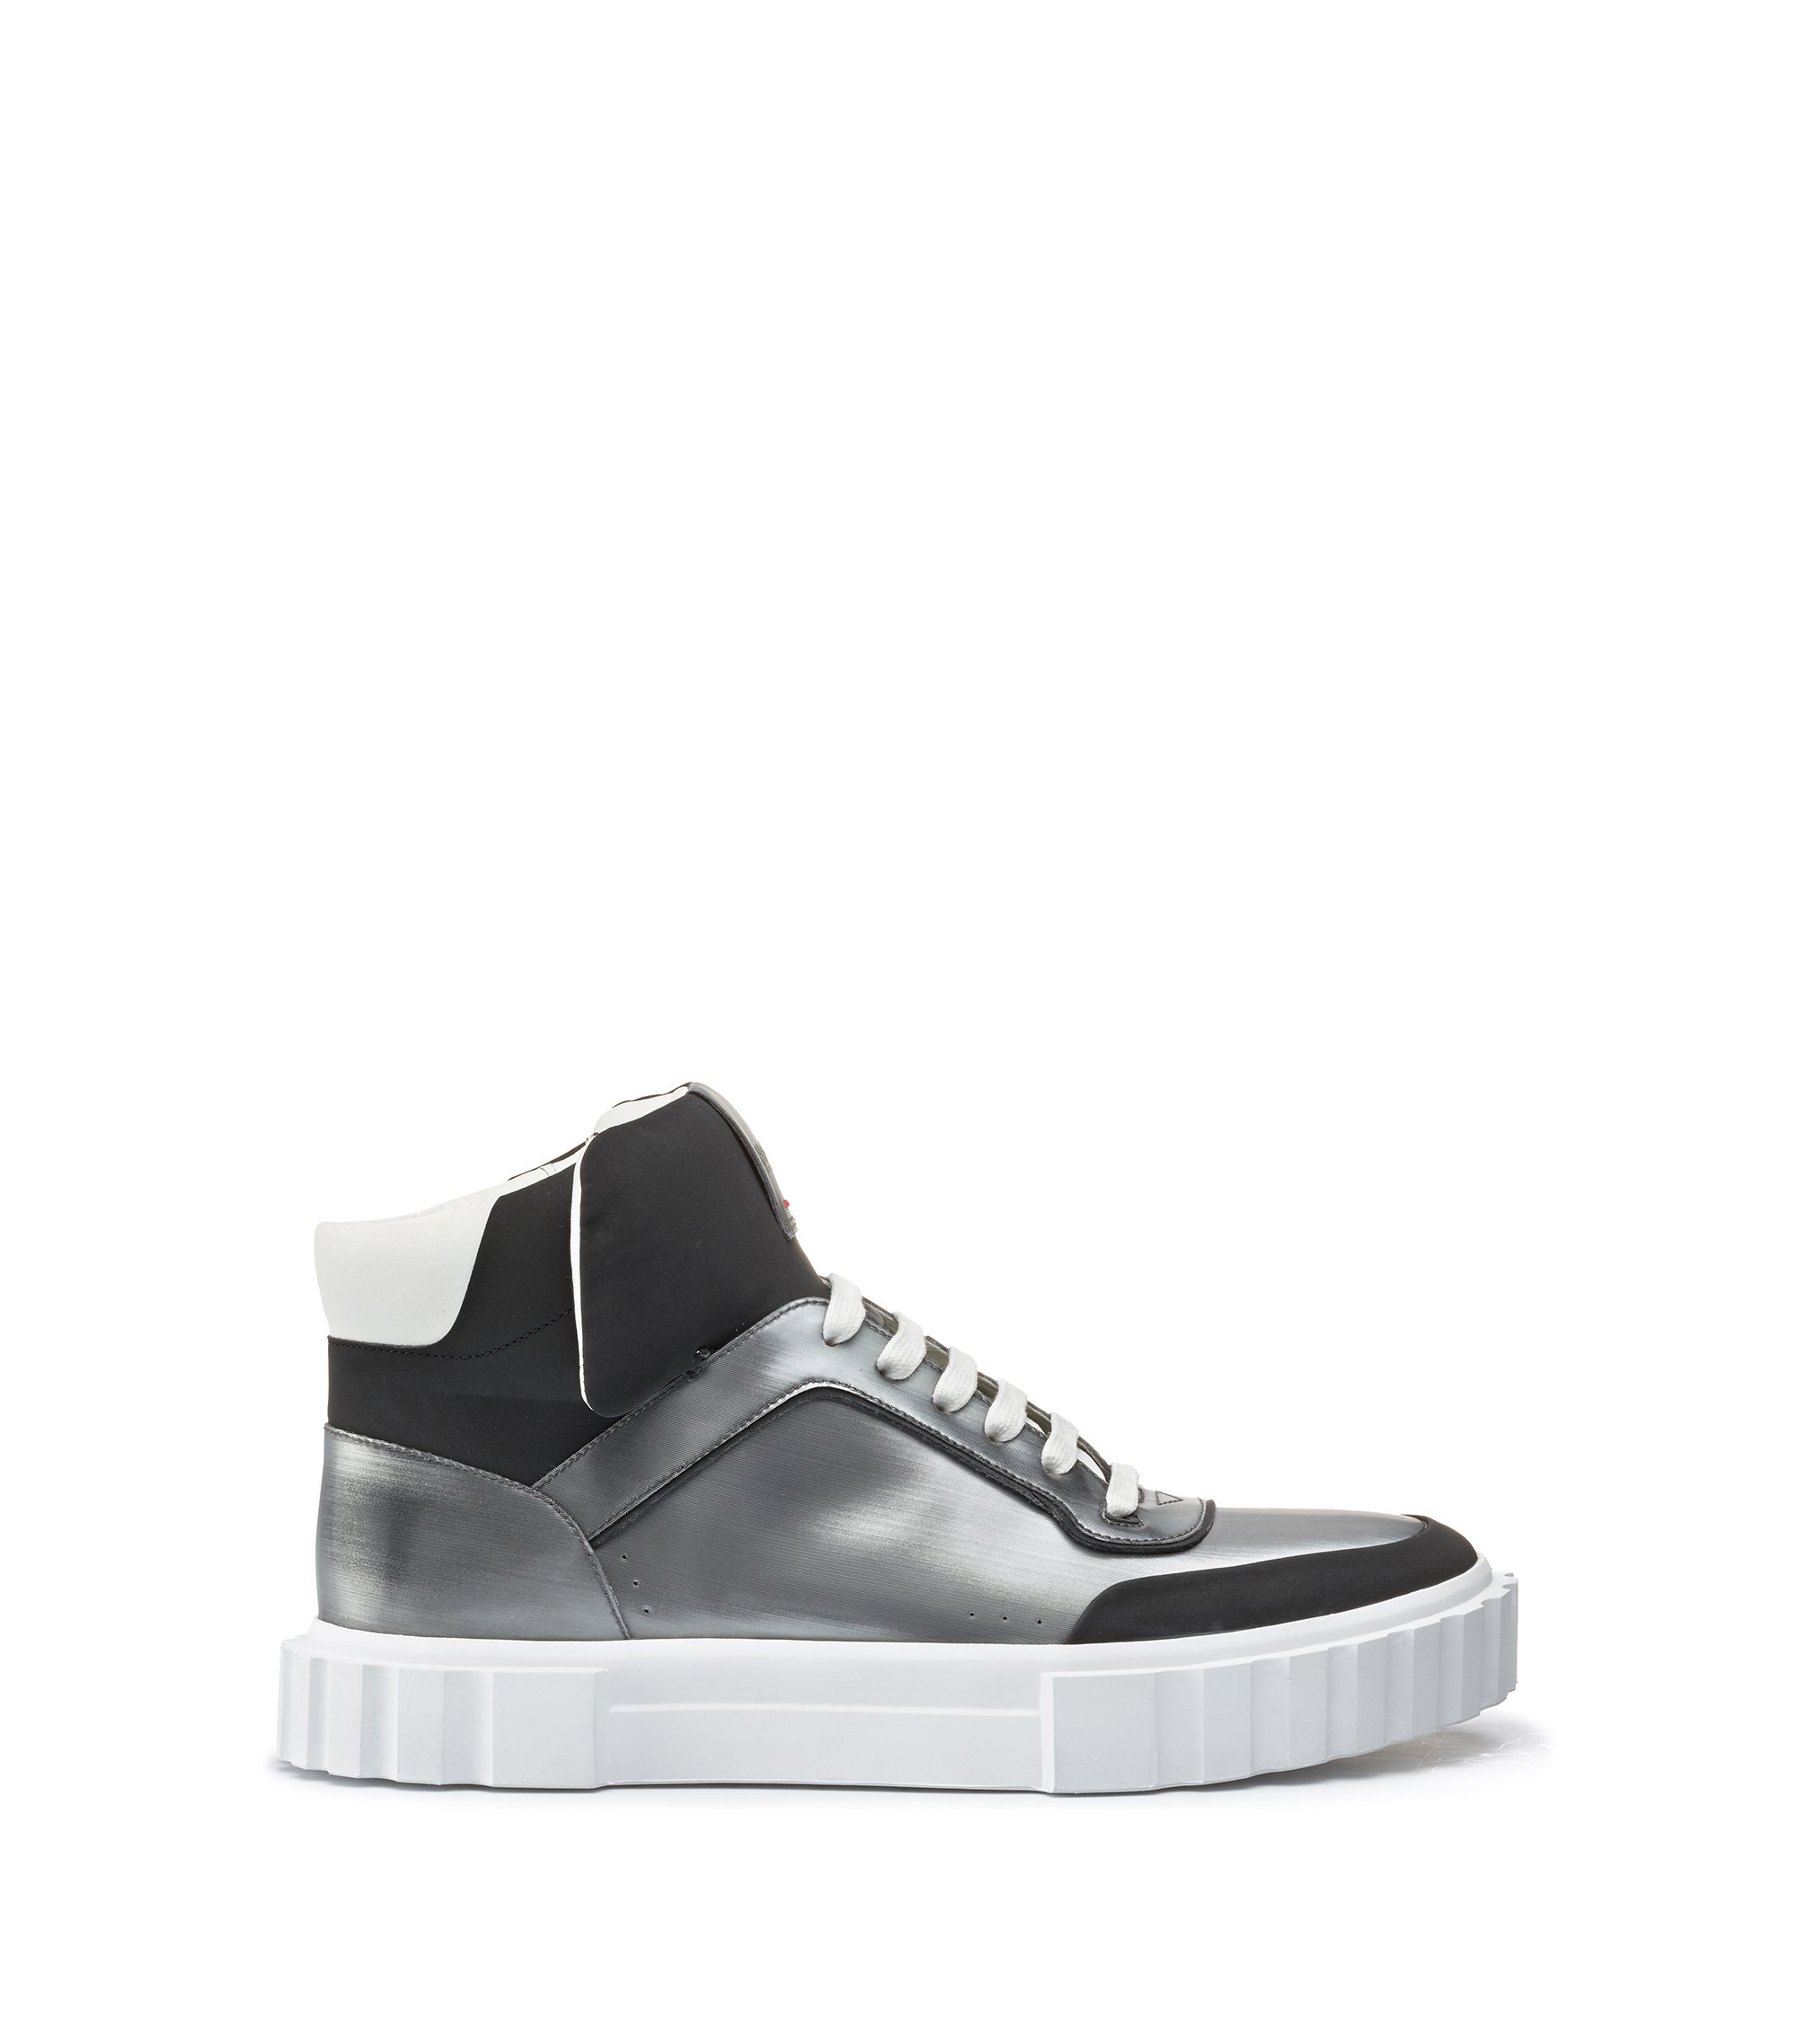 High-top lace-up trainers with metallic finish, Silver